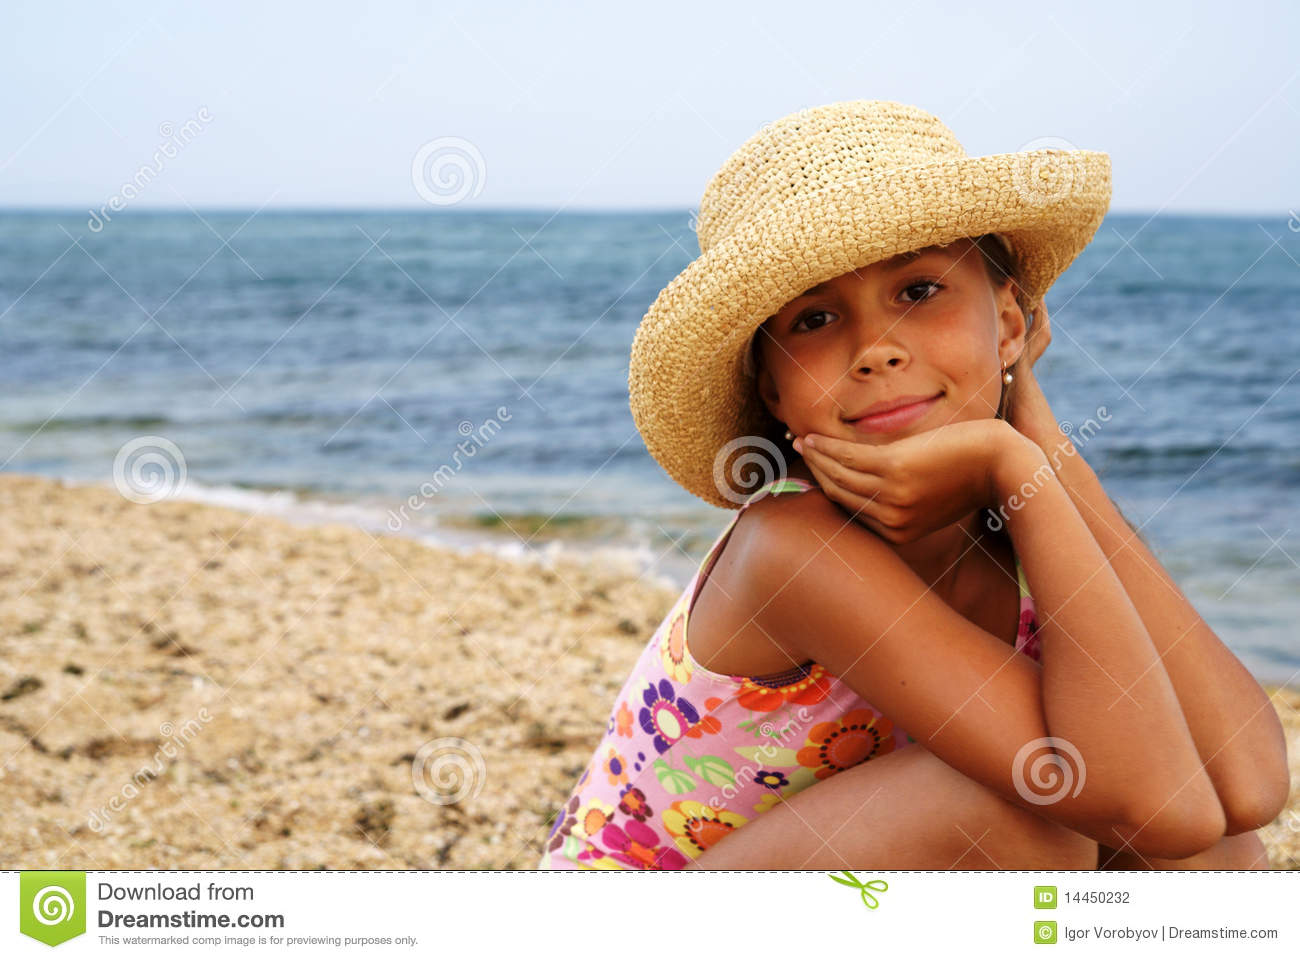 Kitchen Cabinet Degreaser Preteen Girl On Sea Beach Stock Photo And Royalty Free